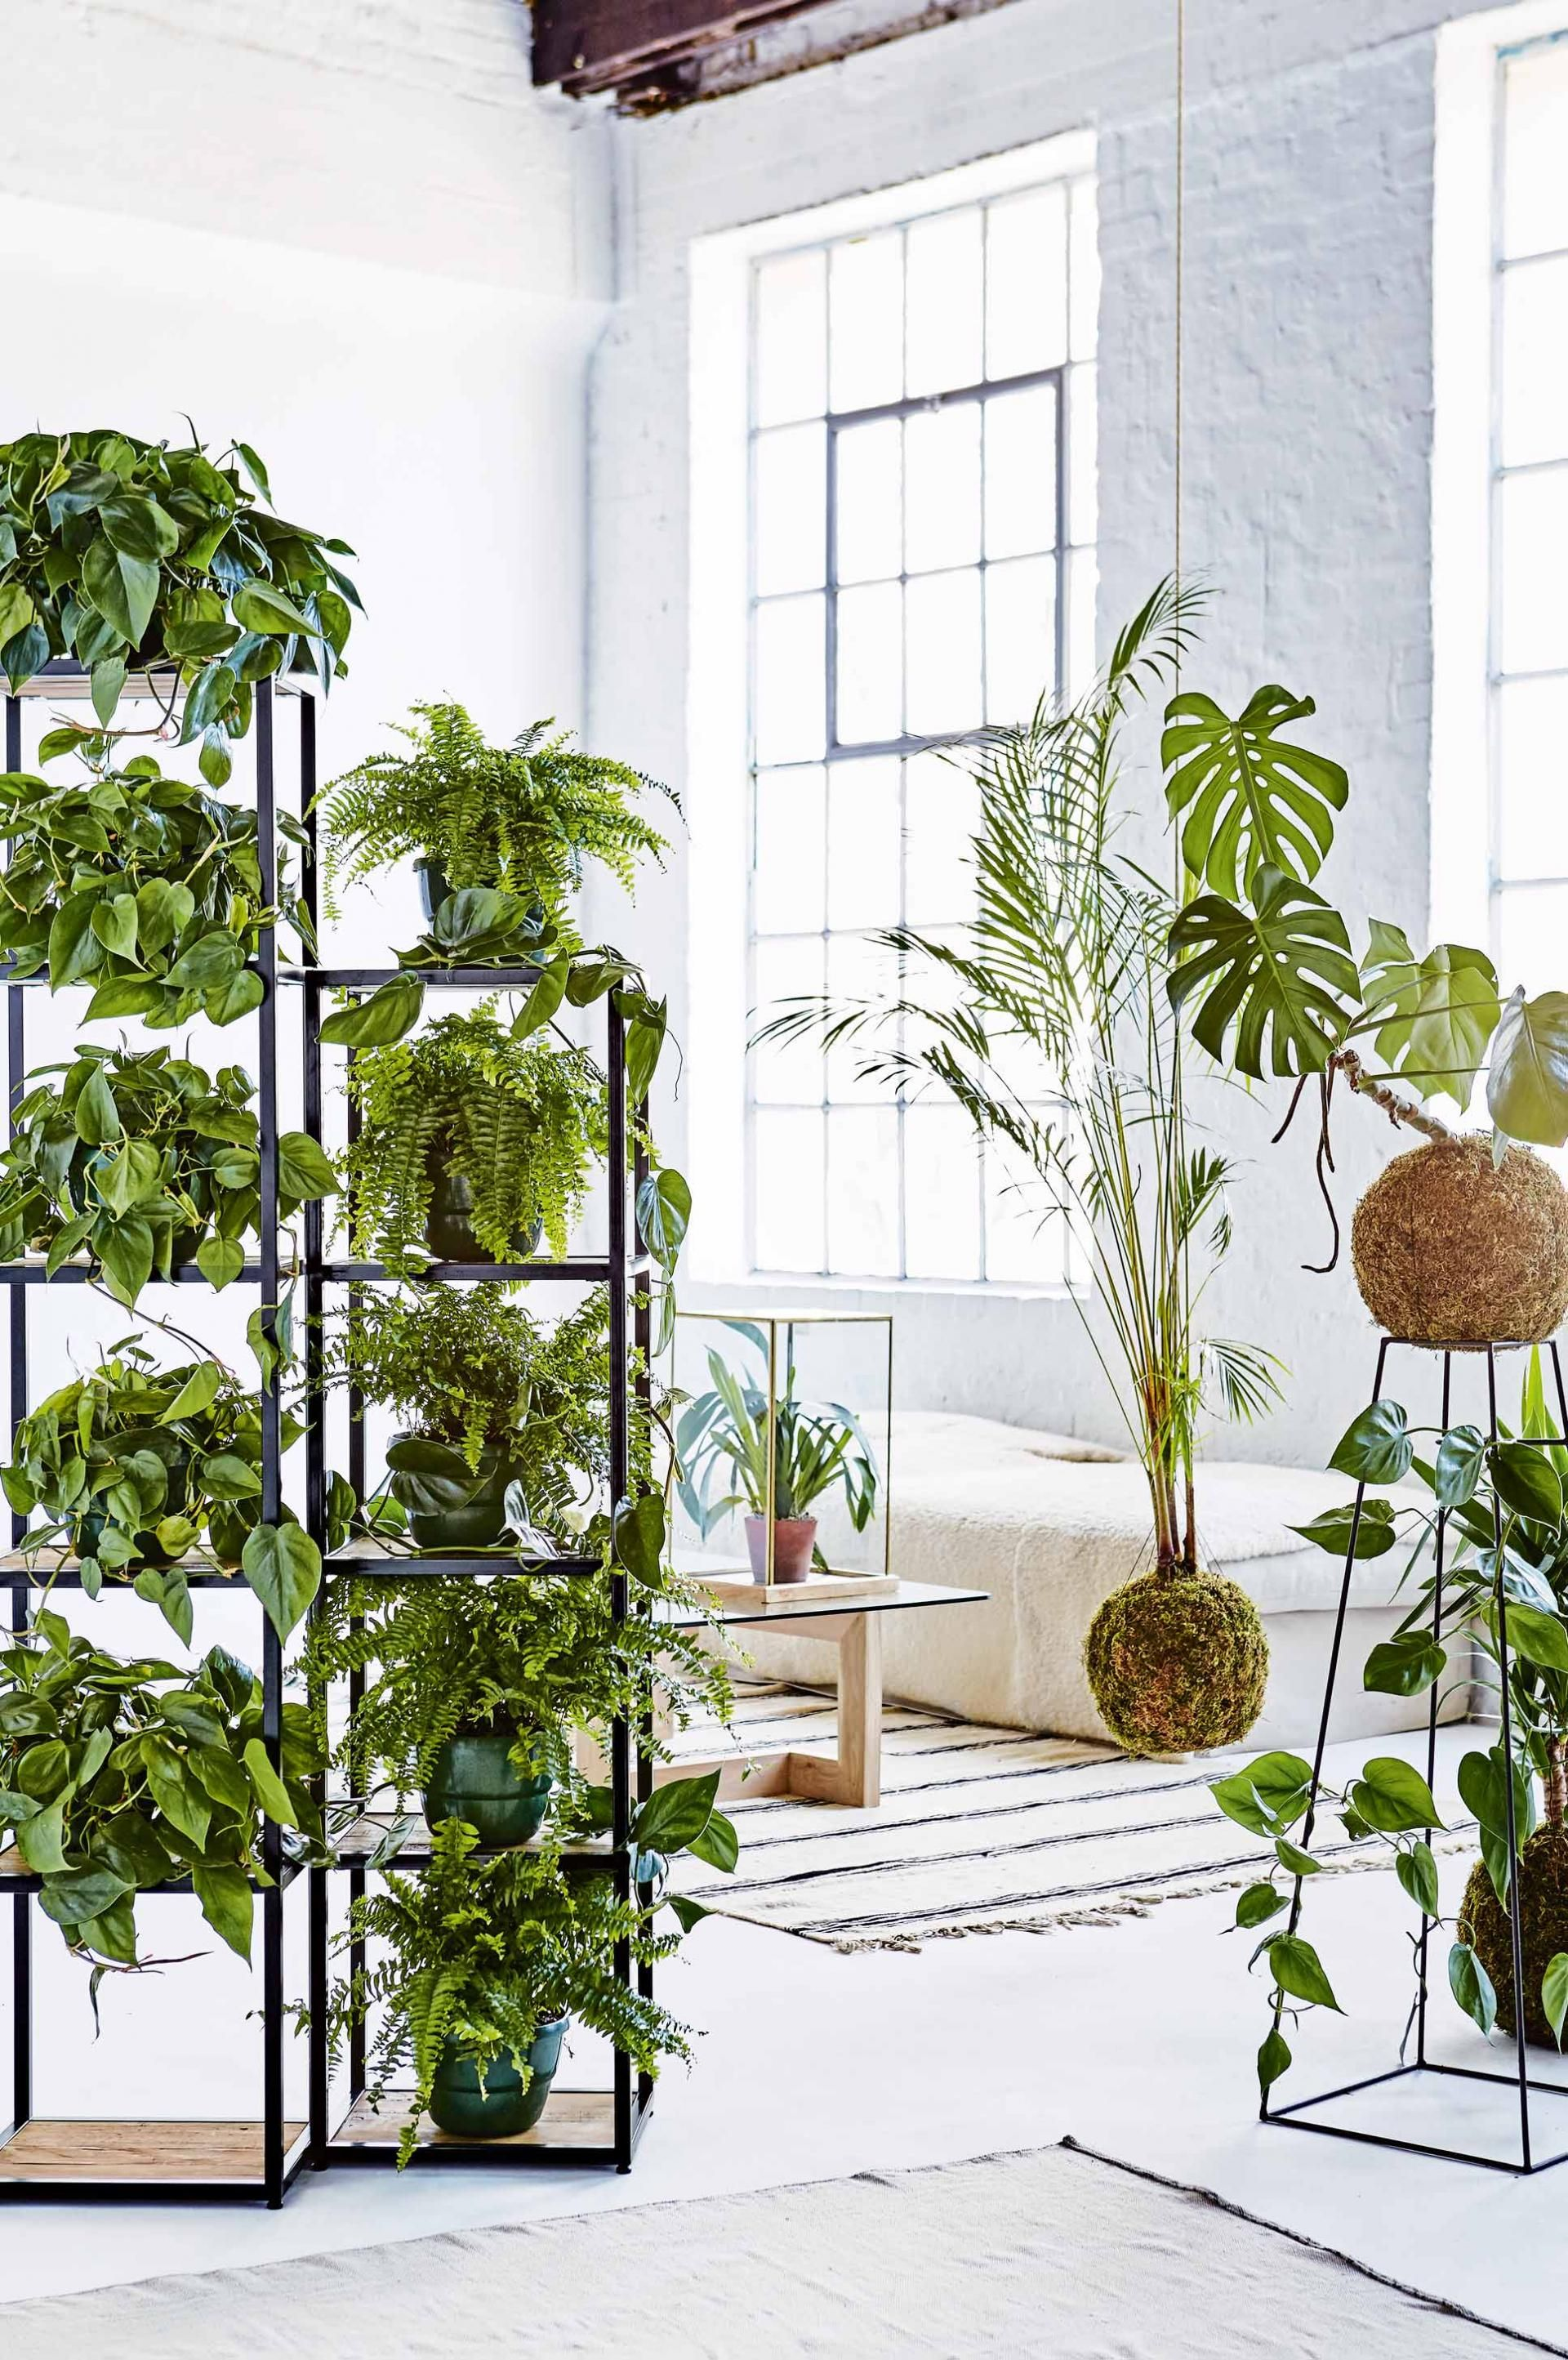 10 unforgettable ideas for styling indoor plants for Indoor plant ideas